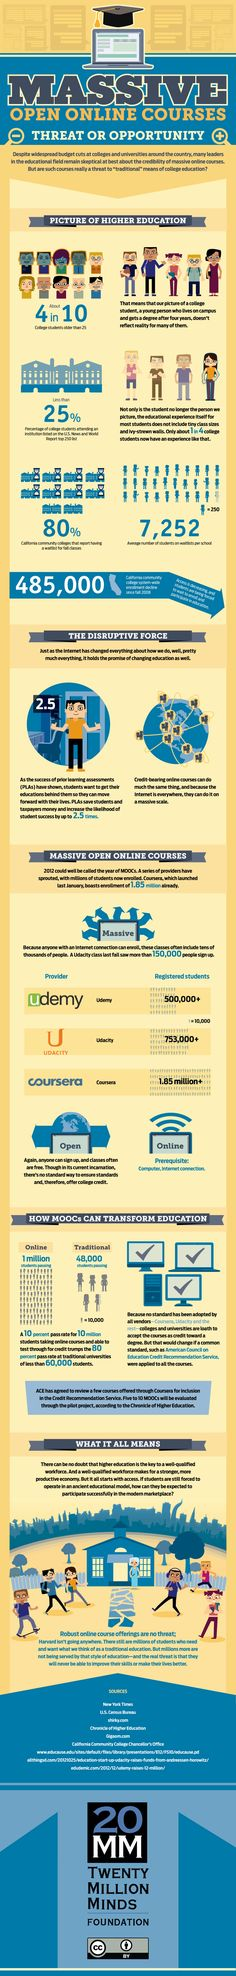 MOOCs: Threat or Opportunity